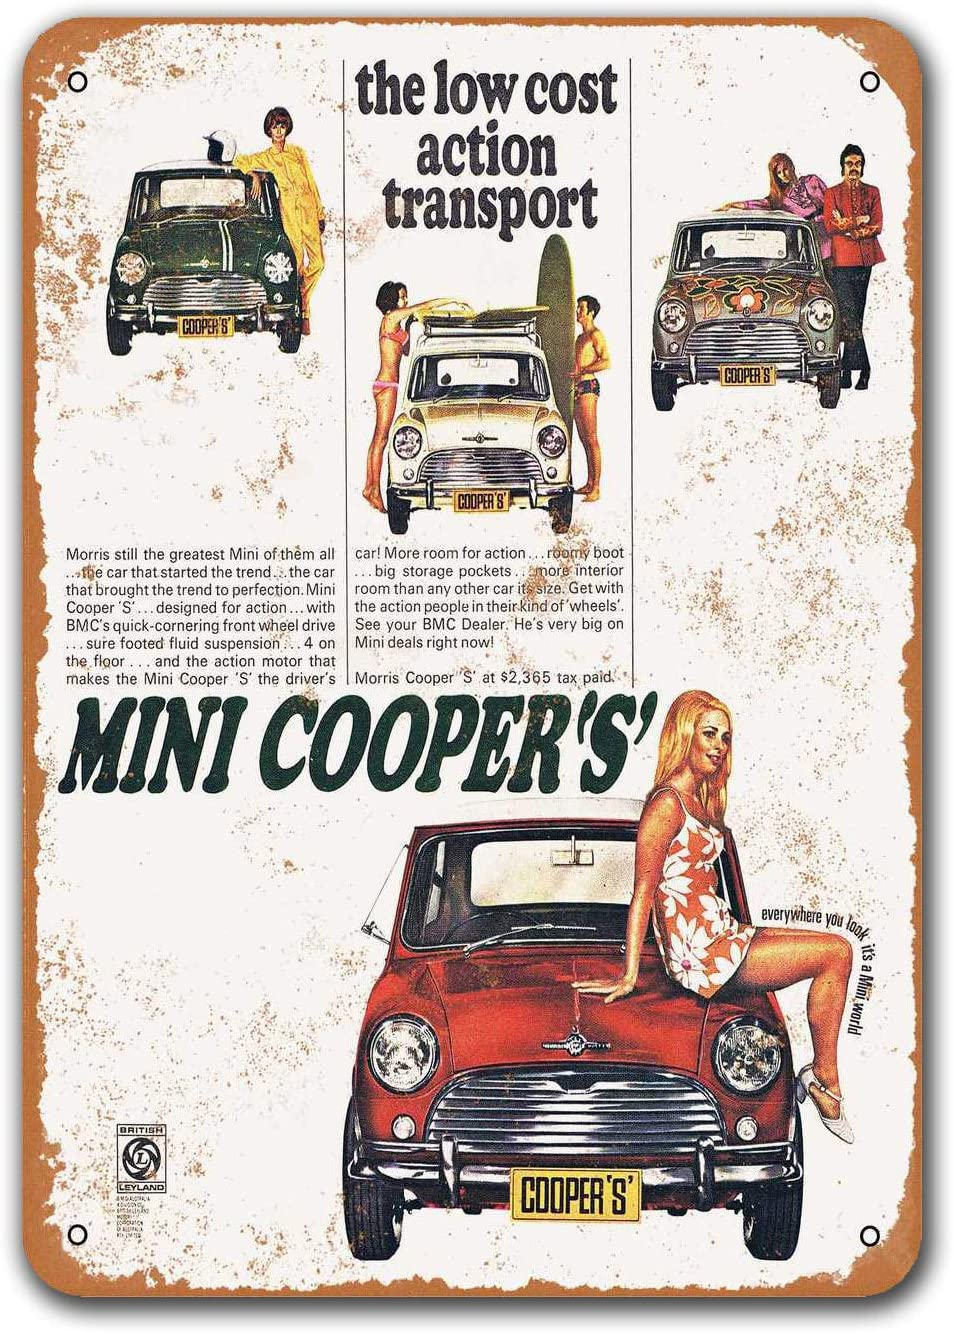 1969 Mini Cooper Car Metal Tin Sign, Sisoso Vintage Plaques Poster Bar Man Cave Retro Wall Decor 8x12 inch